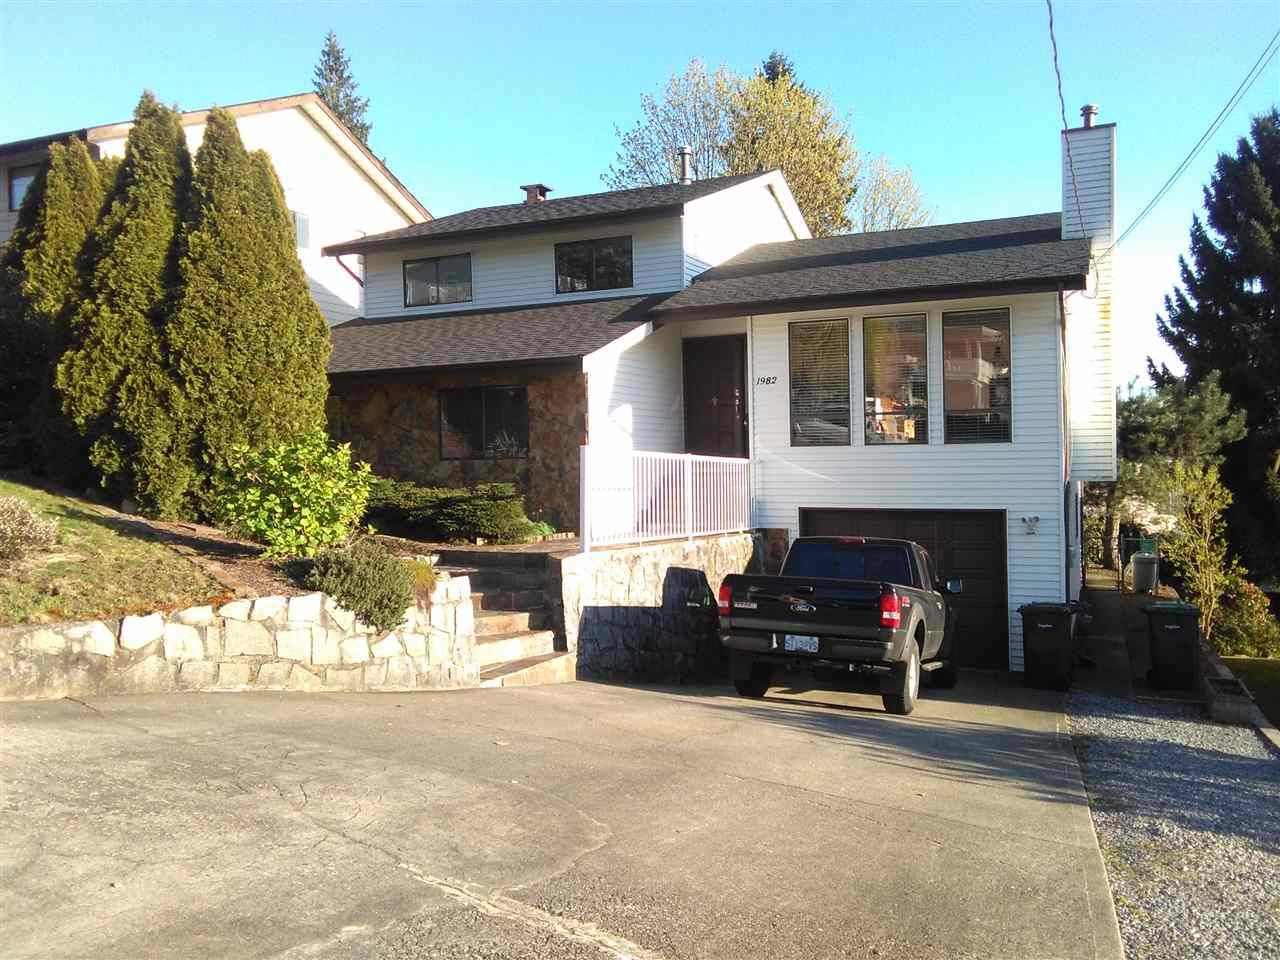 Main Photo: 1982 WILTSHIRE Avenue in Coquitlam: Cape Horn House for sale : MLS®# R2045669